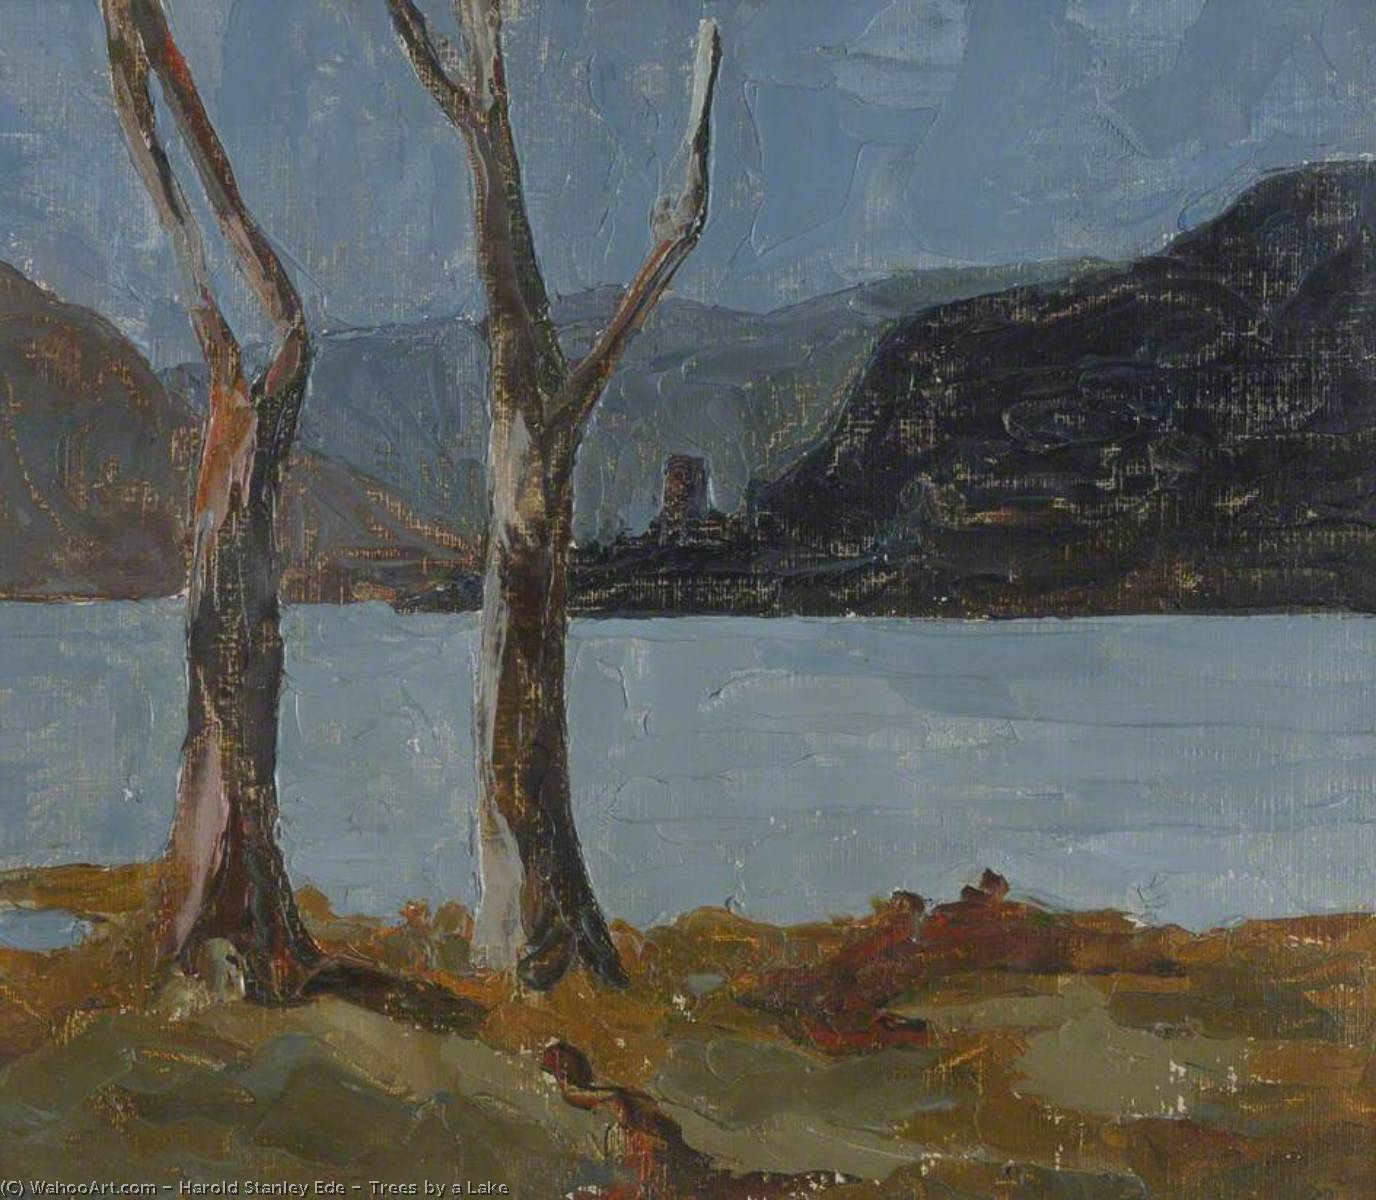 Trees by a Lake, Oil by Harold Stanley Ede